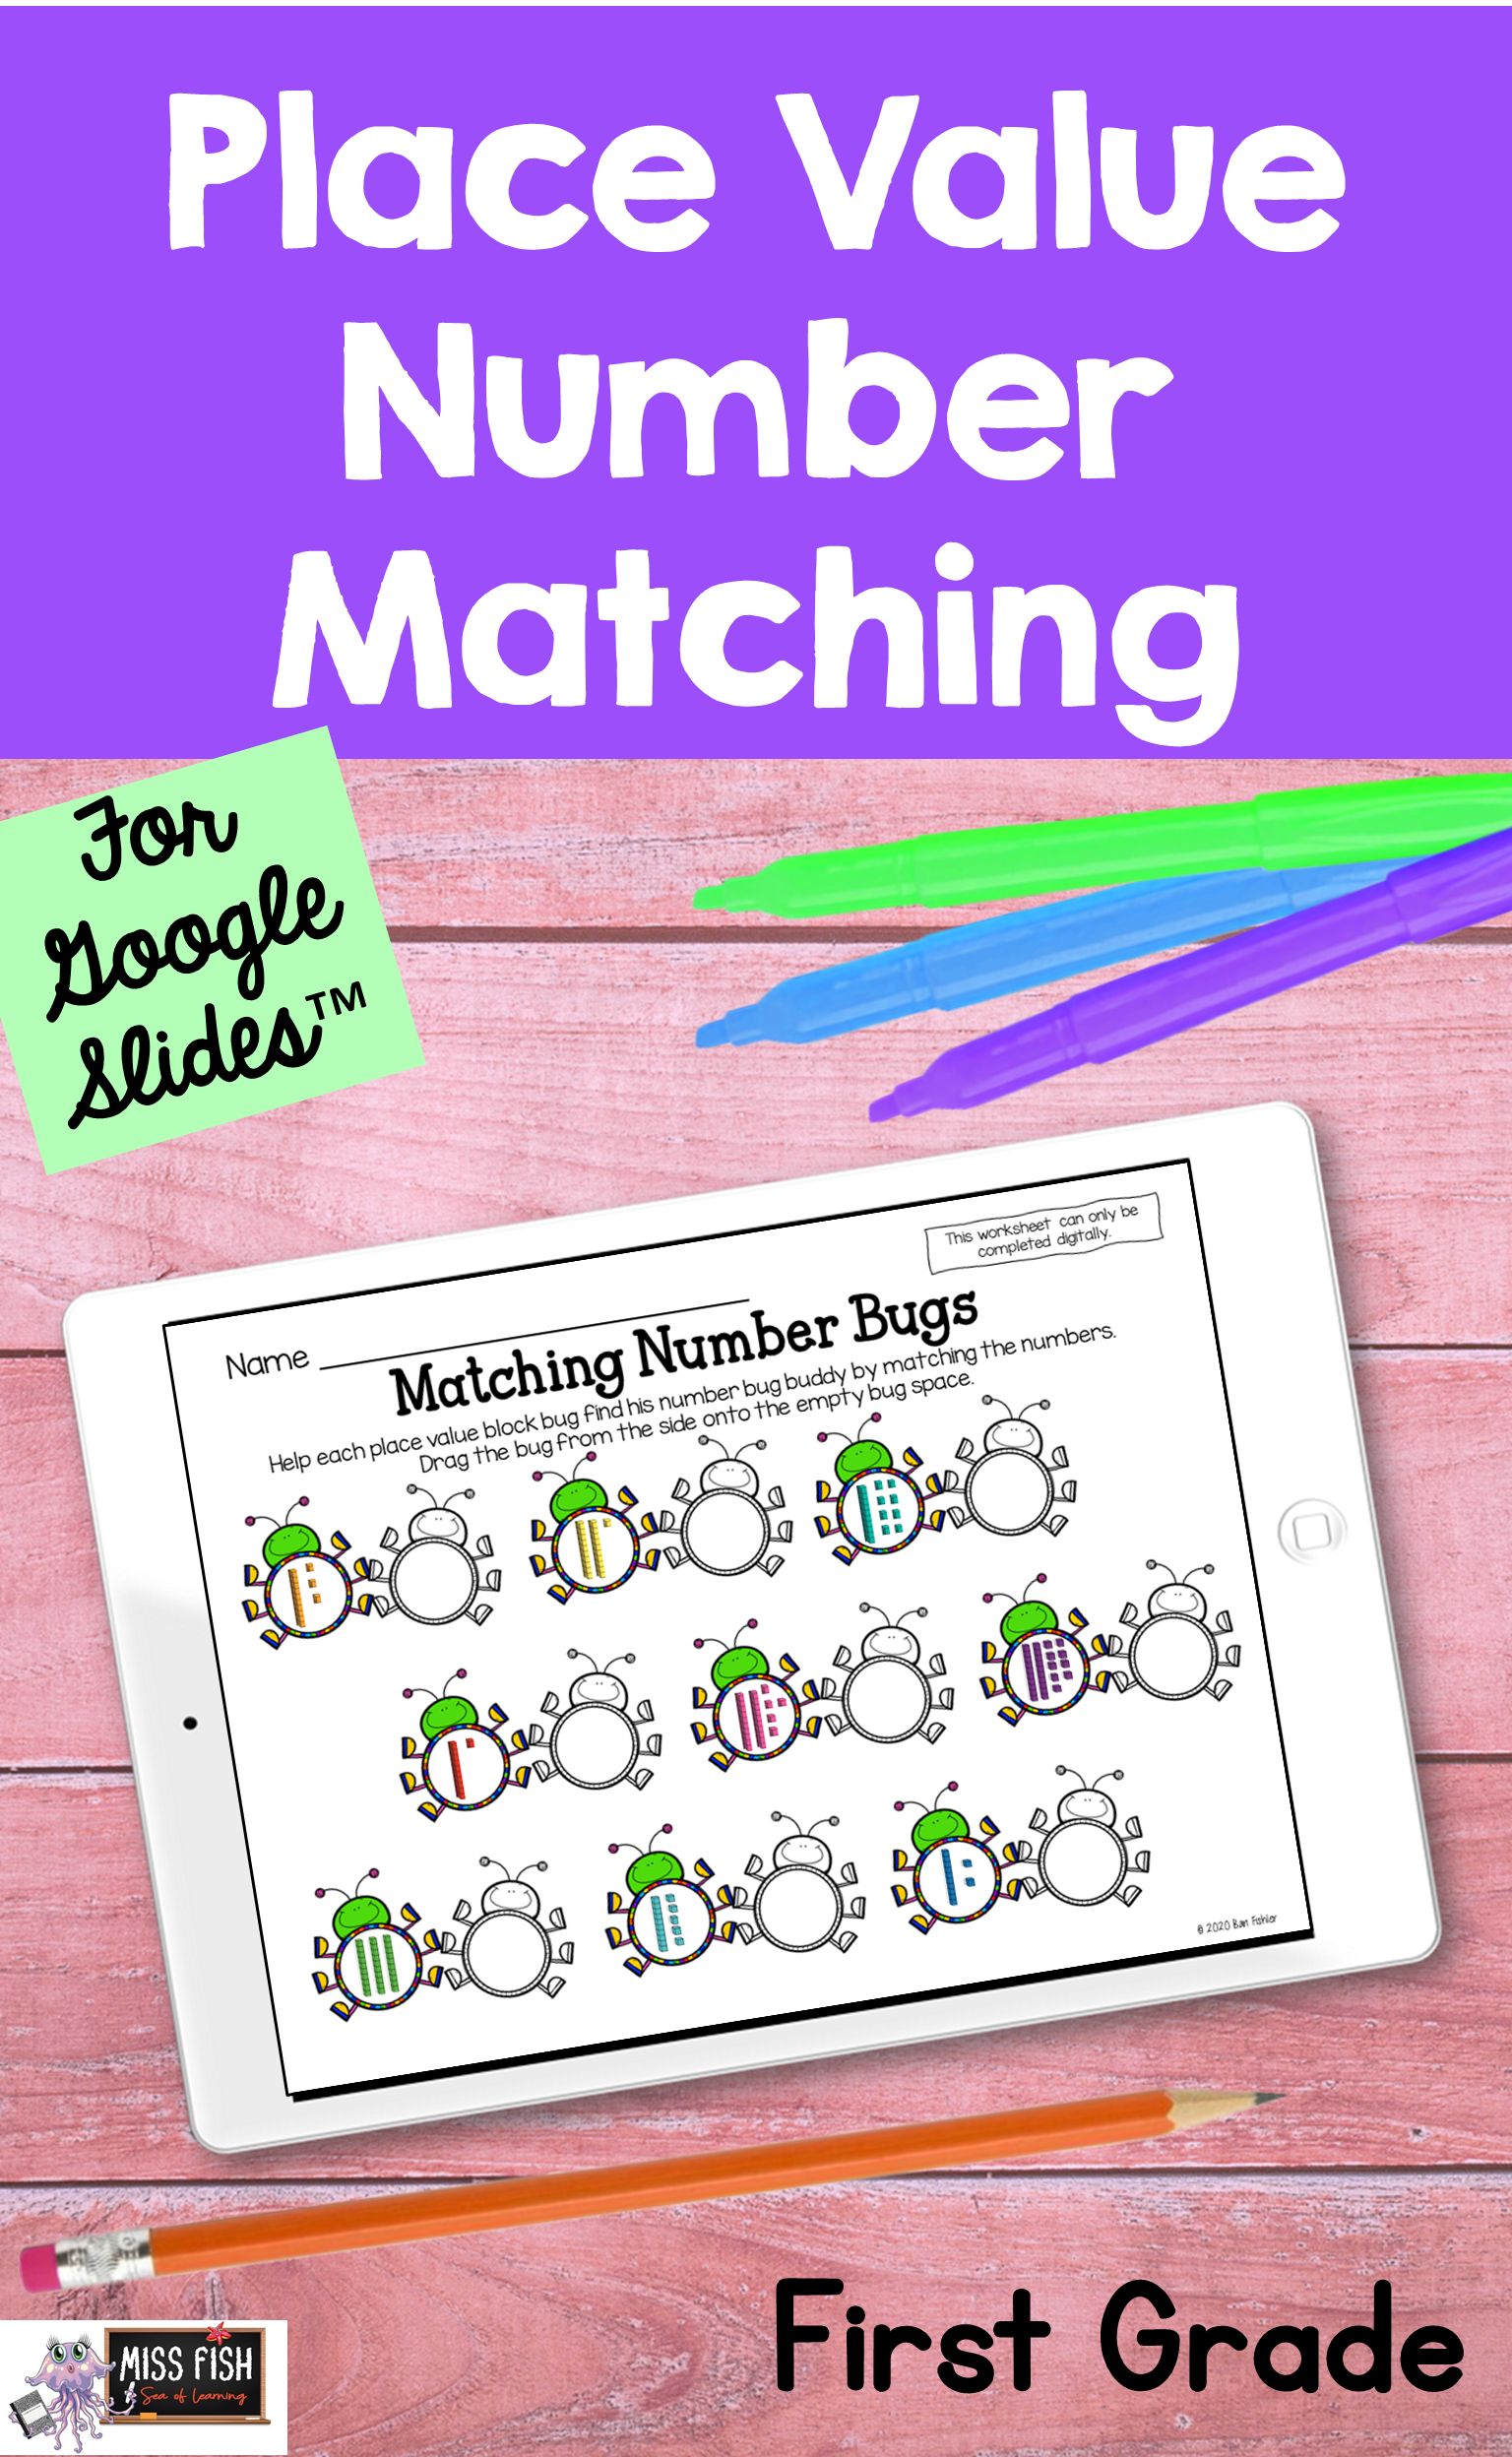 Place Value Number Matching For Slides